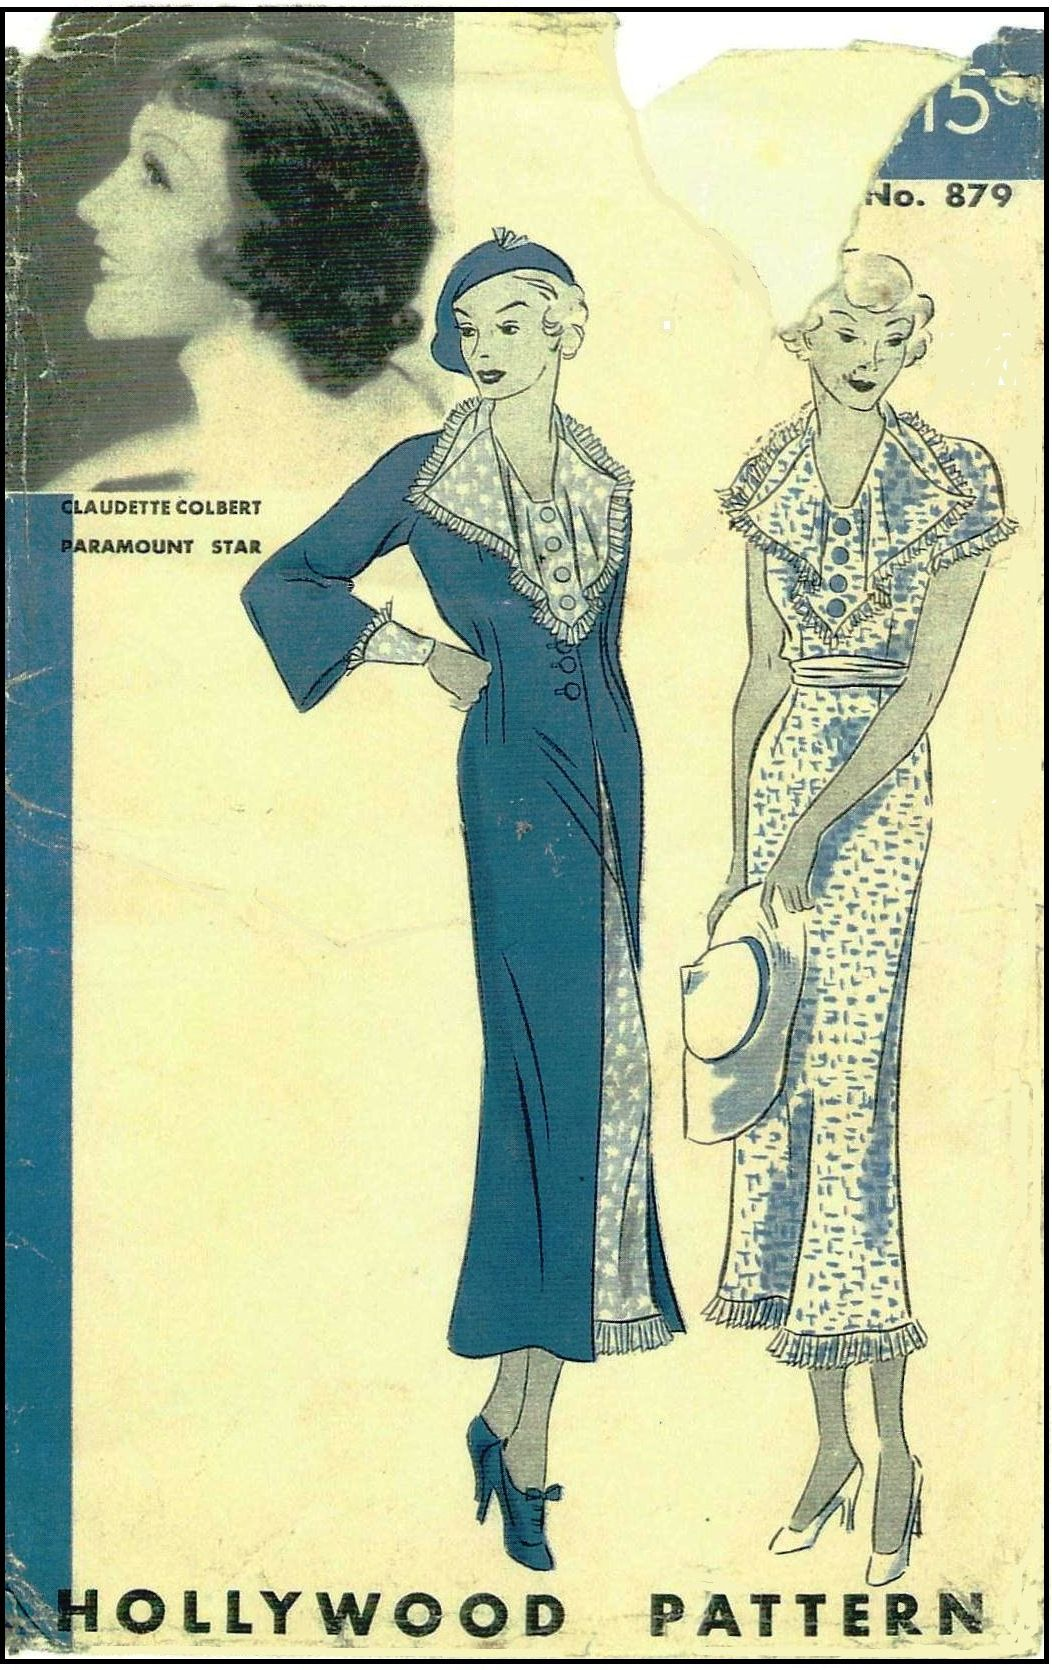 1930s Ladies Dress and Jacket Sewing Pattern - Claudette Colbert for Hollywood Pattern #879